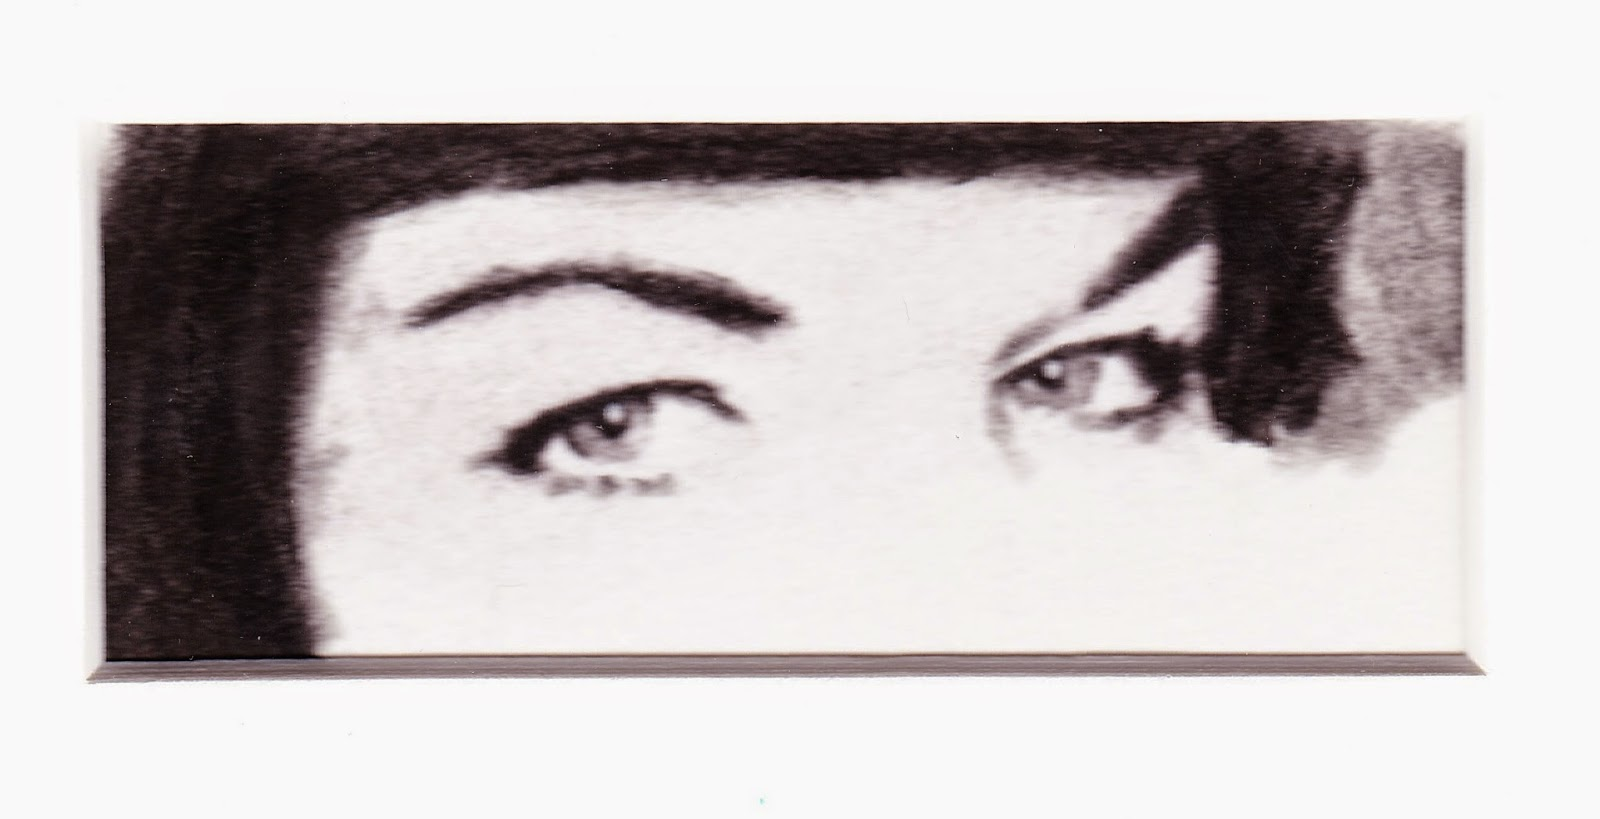 Eyes of Bettie Page by F. Lennox Campello